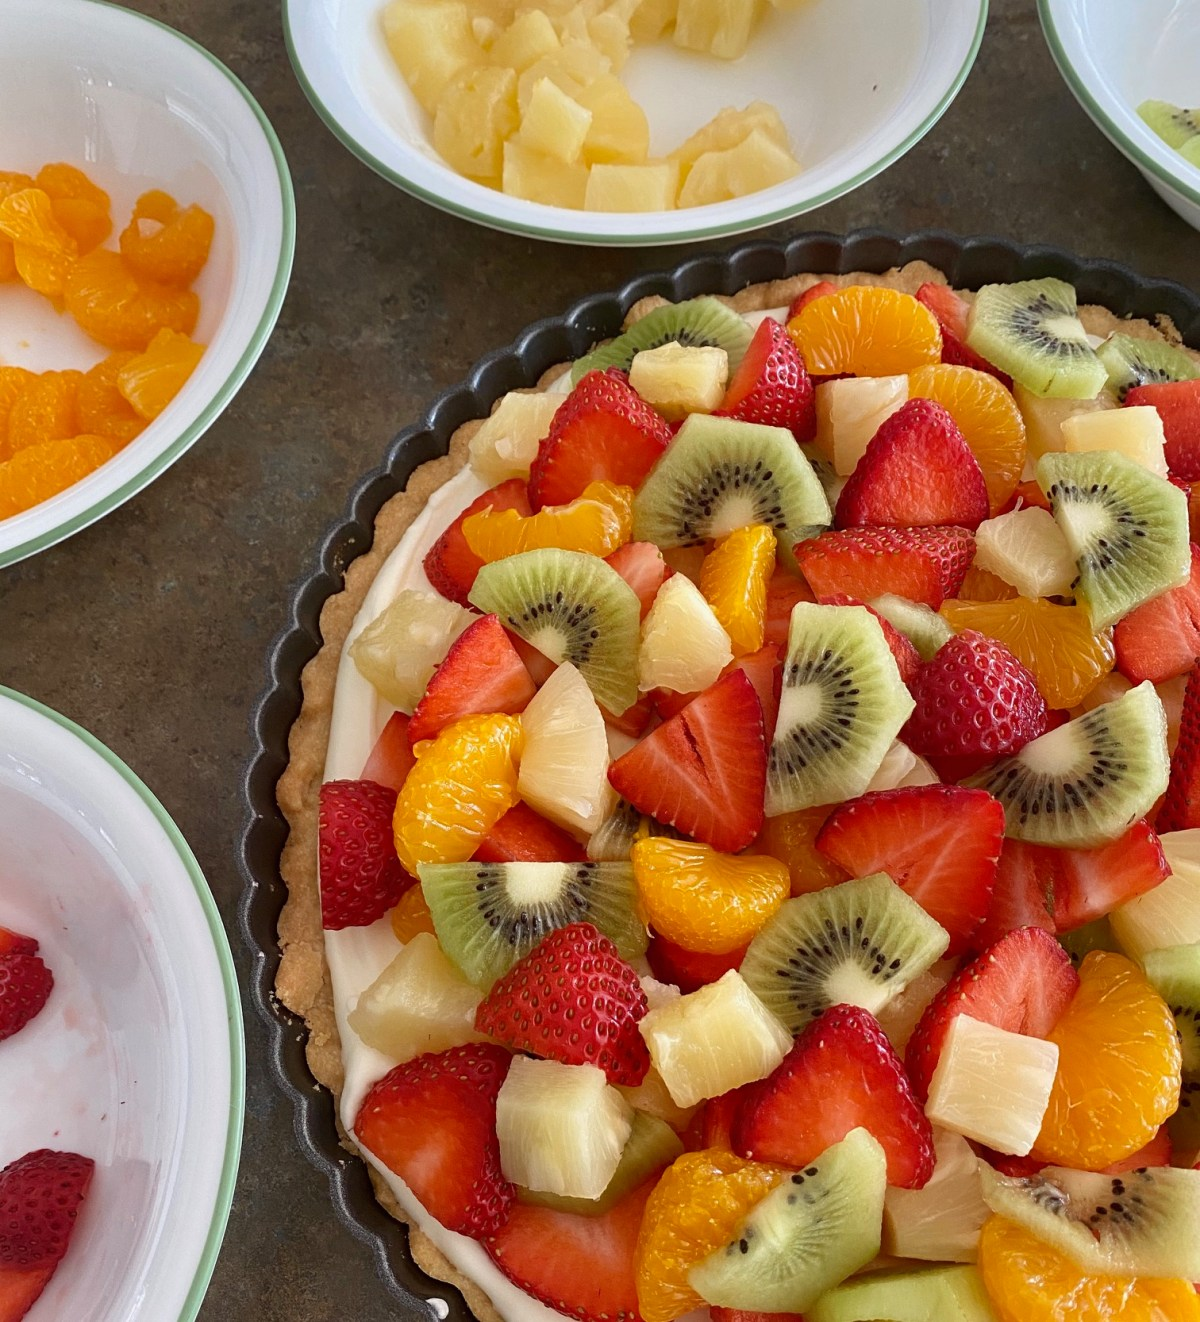 Mandarin oranges, pineapple chunks, kiwi and strawberries are layered on top of the tart filling. #fruittart #dessertideas #dessertrecipes #brunchdessert #holidaydessert #partydessert #backtoschoolrecipes